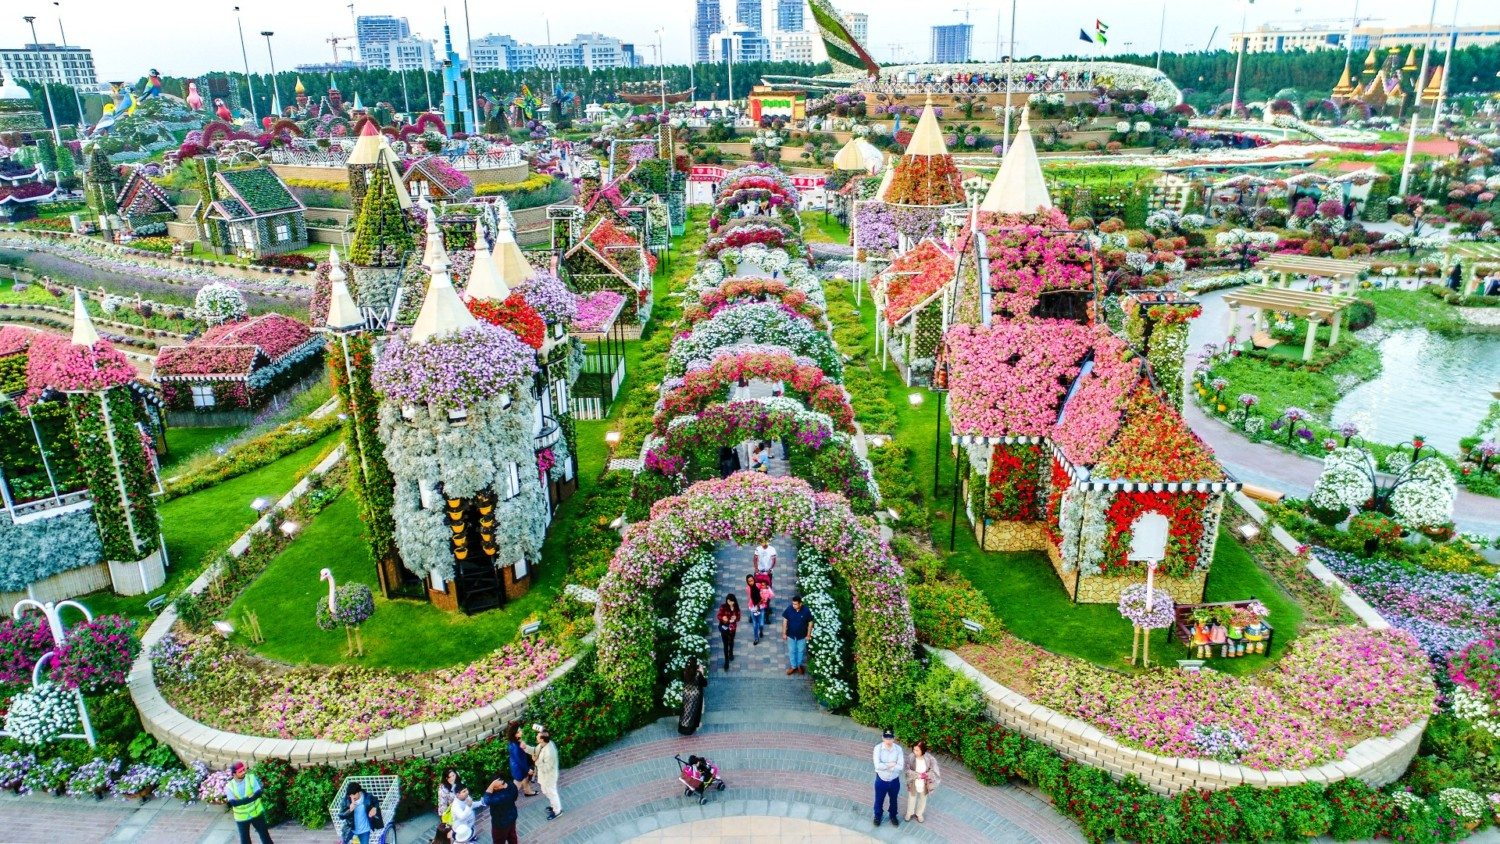 The Worlds Largest Flower Garden Is In A Very Unexpected